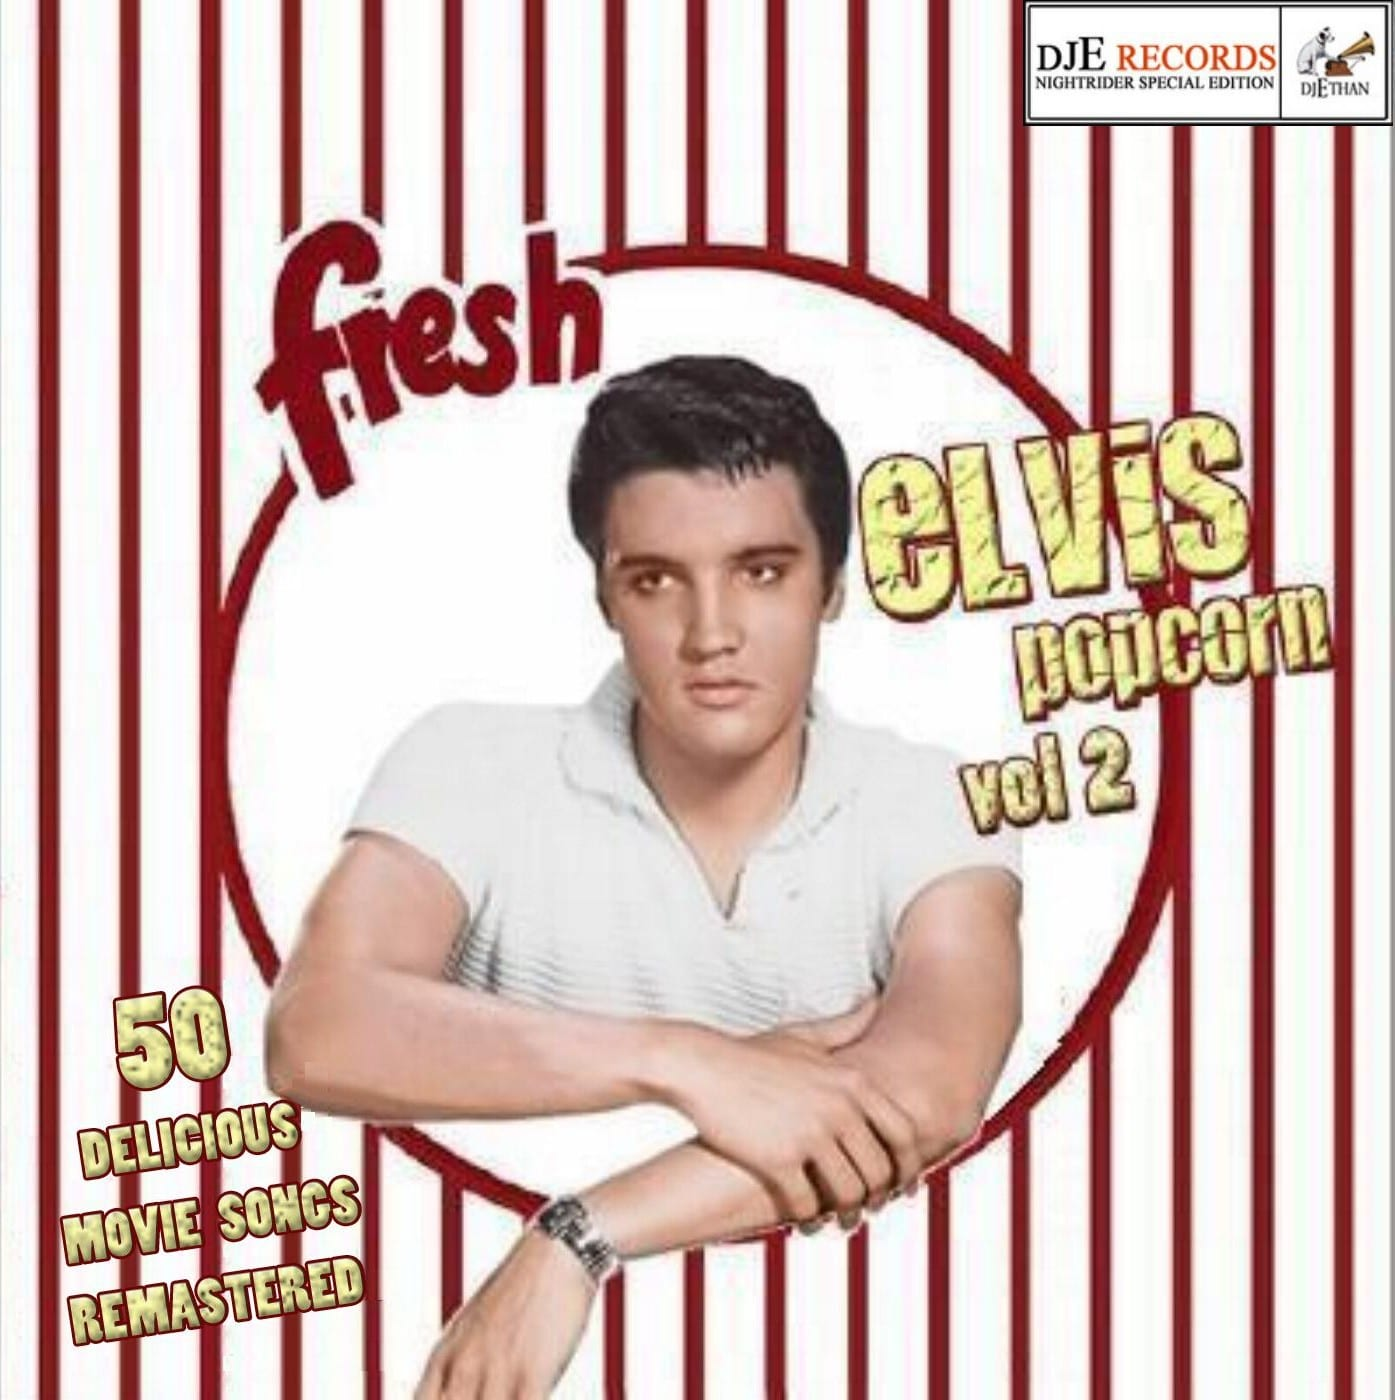 Elvis Presley - Popcorn, Vol. 1 (2008) 2 CD SET 8